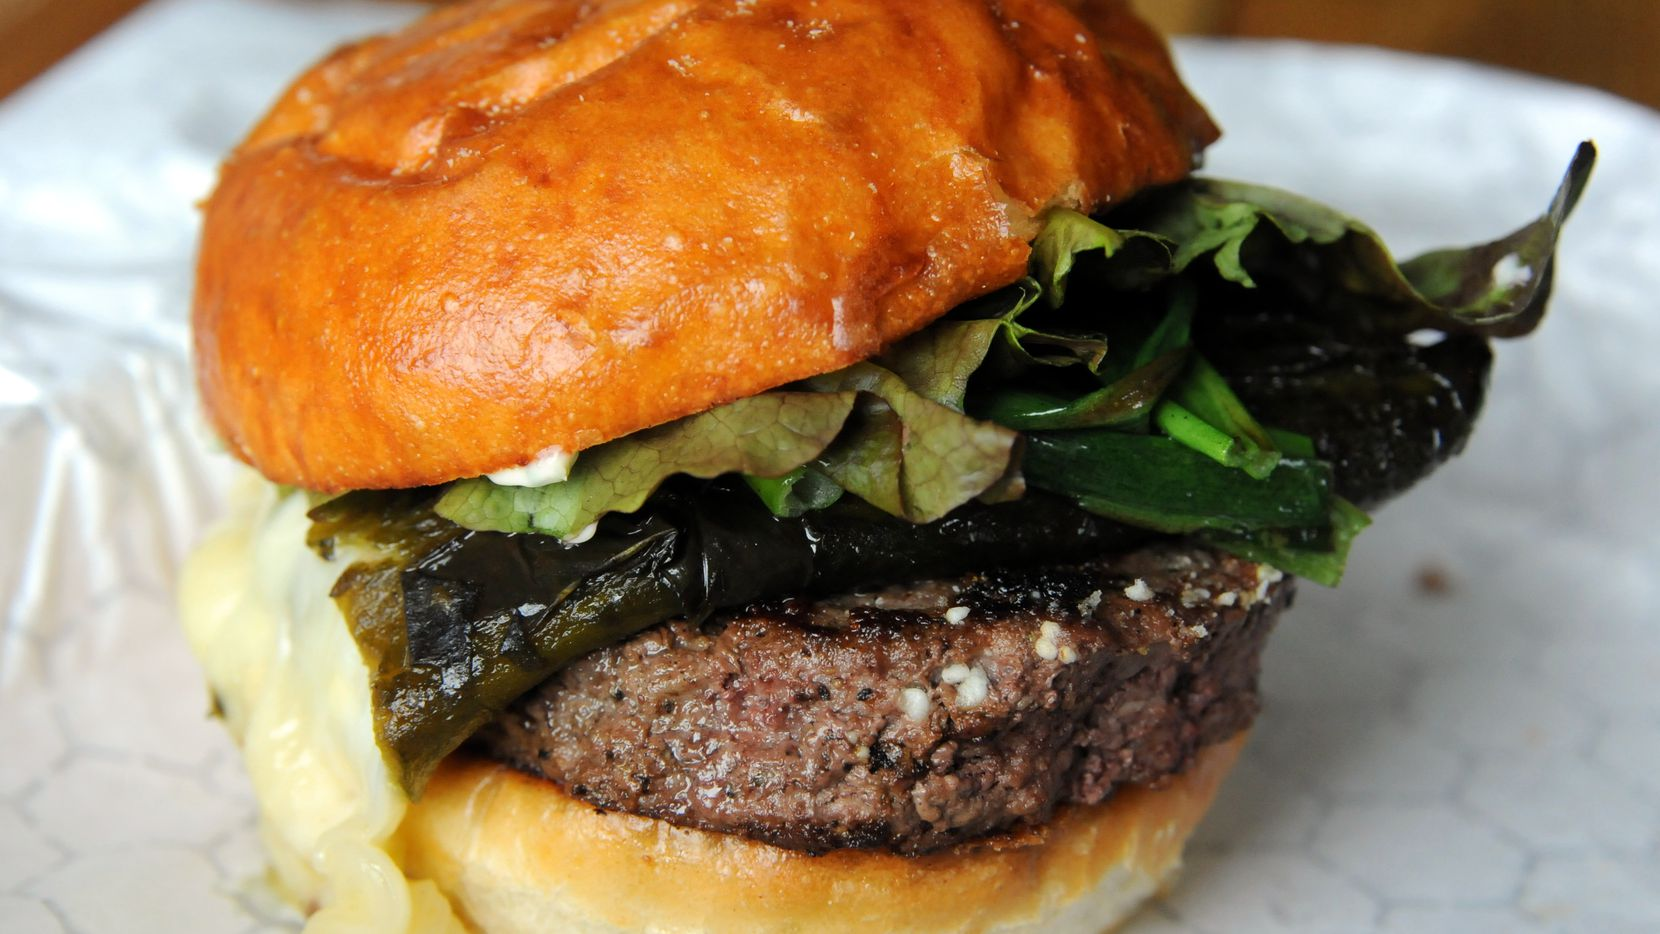 The poblano burger features grilled poblano, queso oaxaca, green onions and cilantro mayo at Thurber Mingus in Fort Worth.